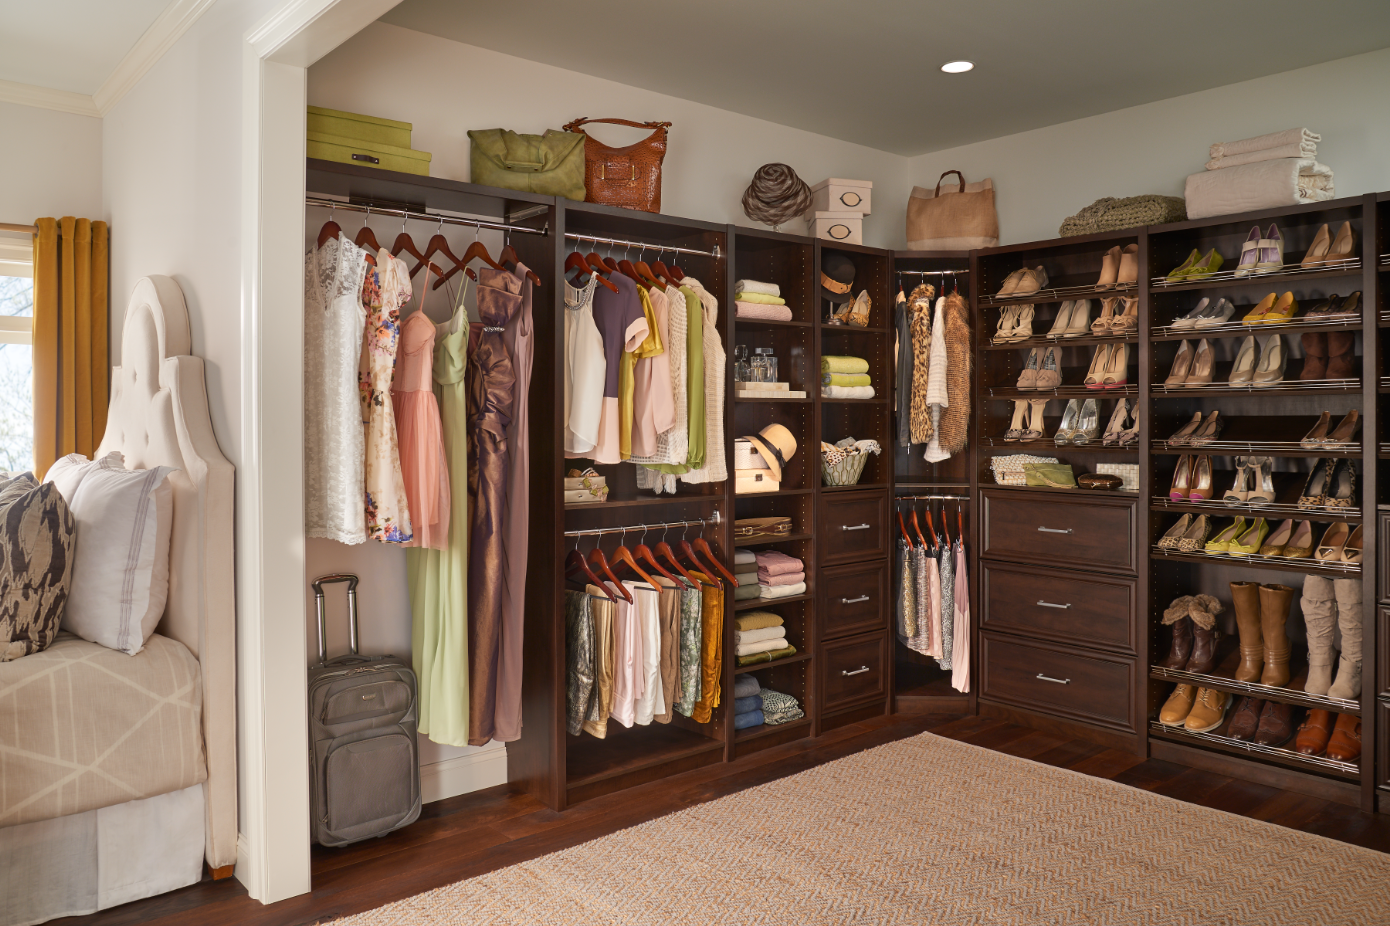 5 Elements of a Perfectly Organized Closet